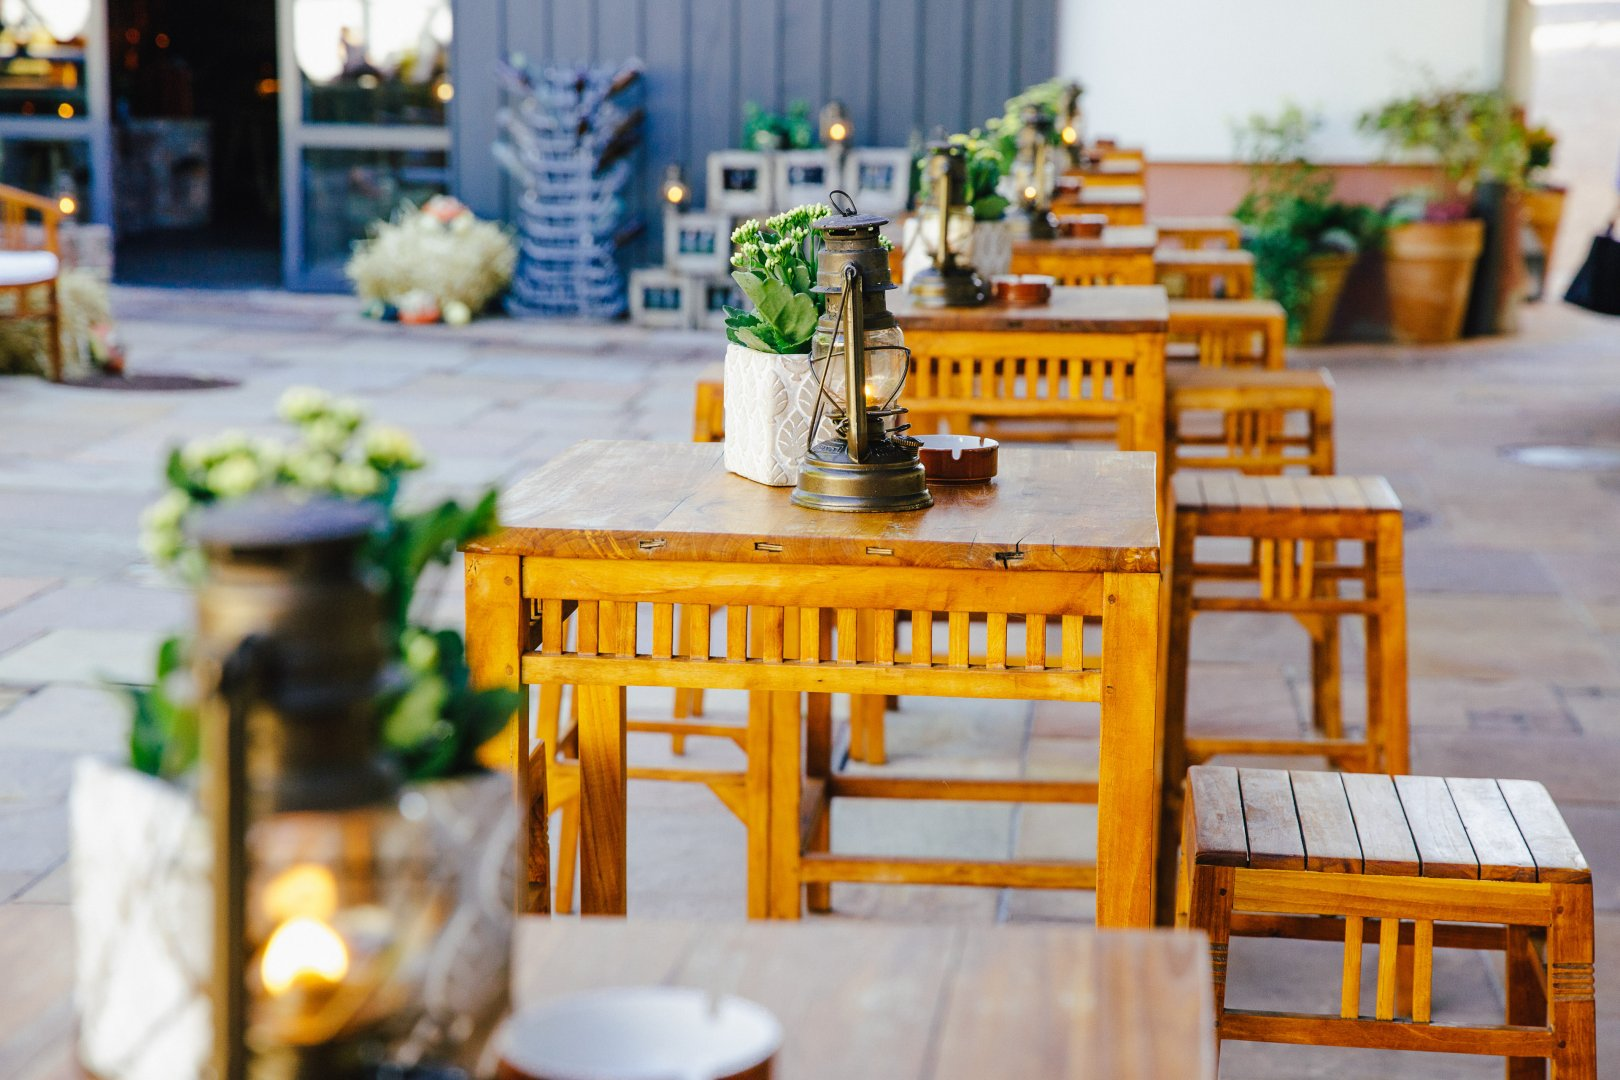 Furniture Table Yellow Chair Room Floristry Floral design Brunch Interior design Flower Wedding reception Ceremony Outdoor table Centrepiece Backyard Outdoor furniture